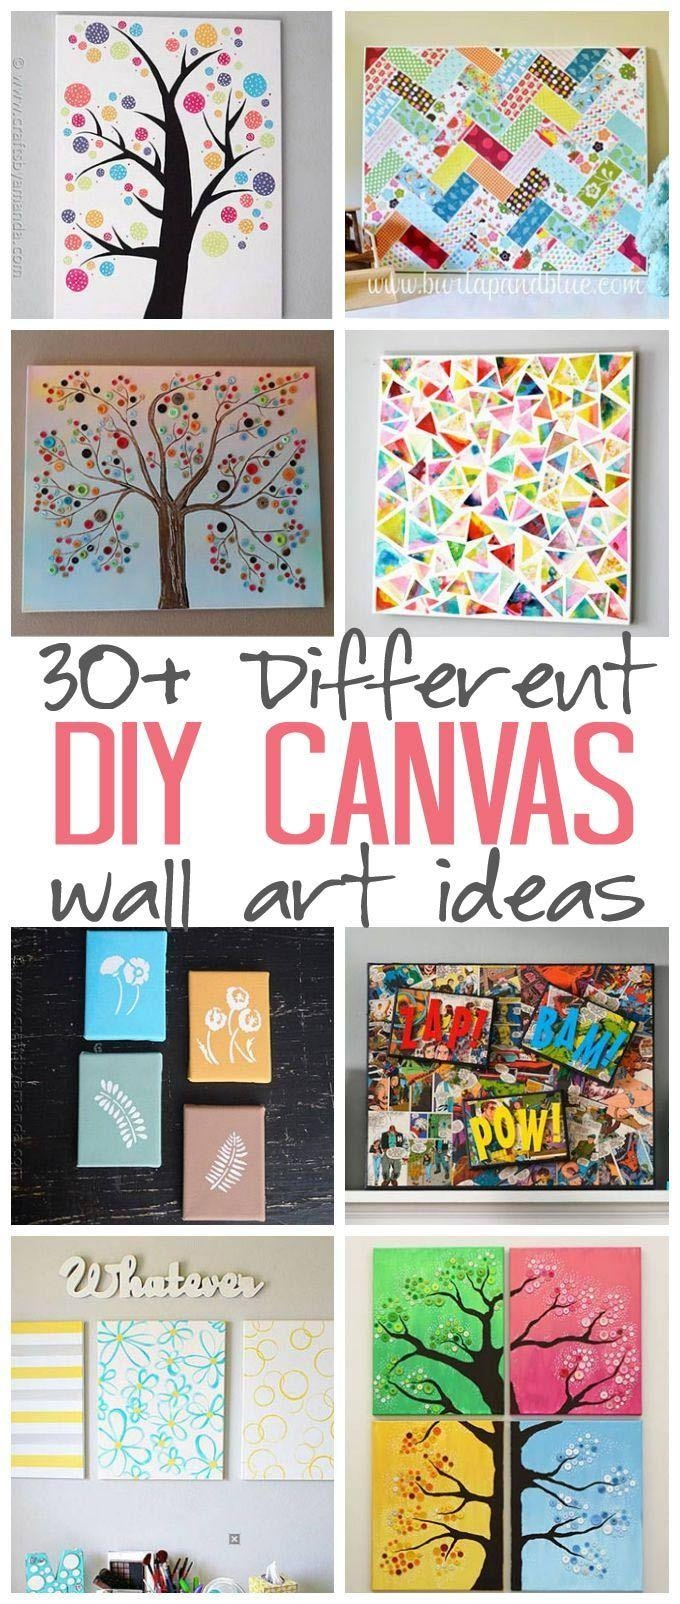 105 Best Art For Me Images On Pinterest | Diy, Drawings And Kid inside Diy Pinterest Canvas Art